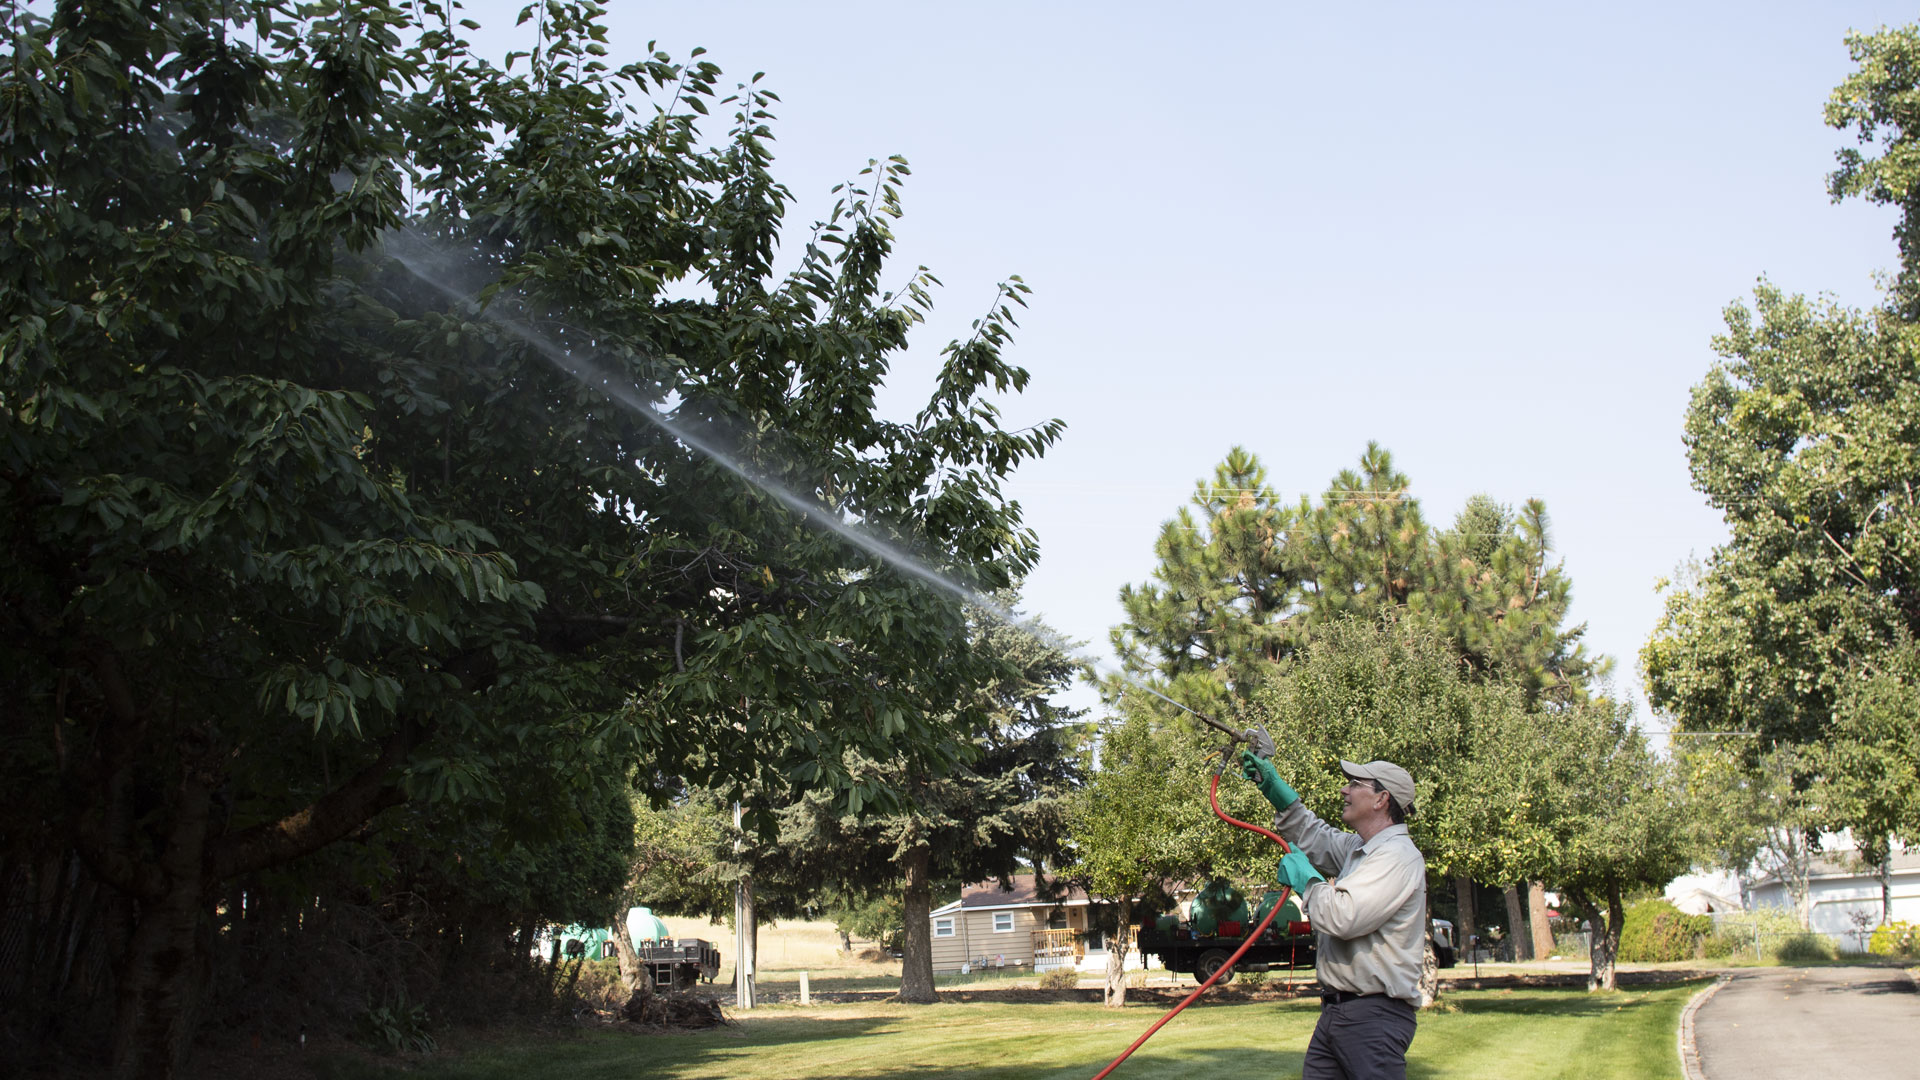 Spraying a large tree with fertilizer at a home in Spokane, WA.